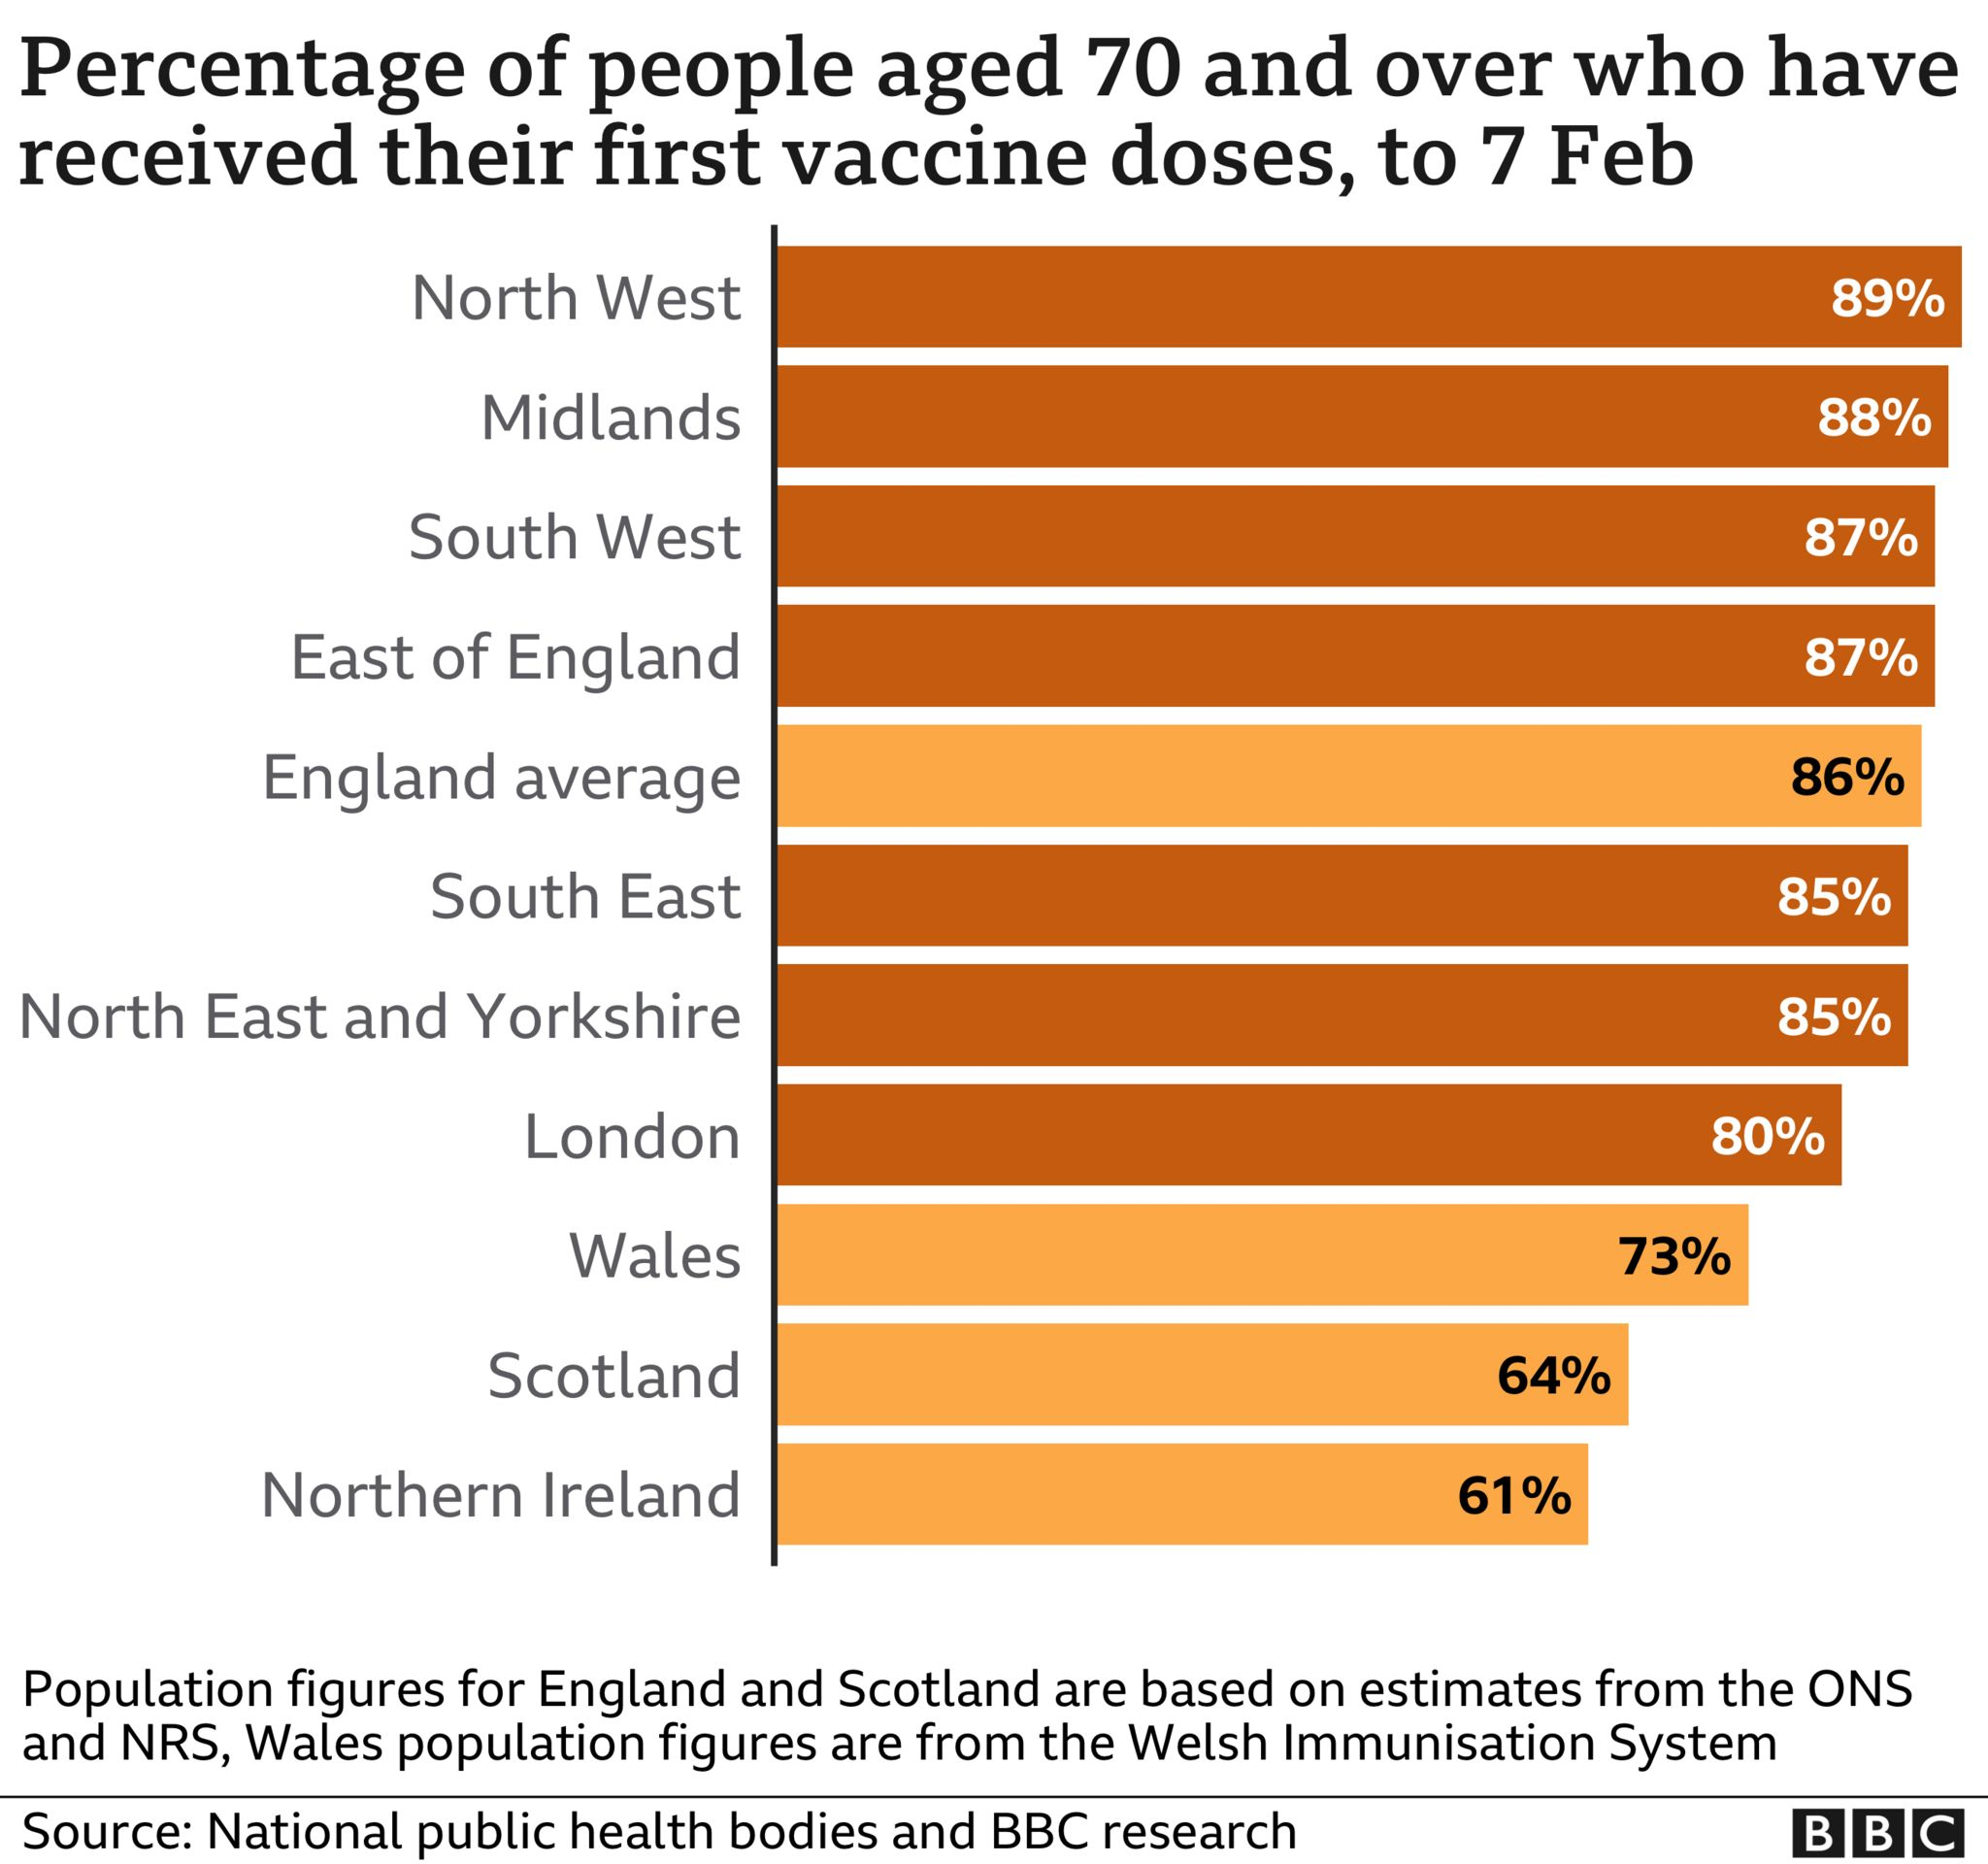 Percentage of over 70s vaccinated